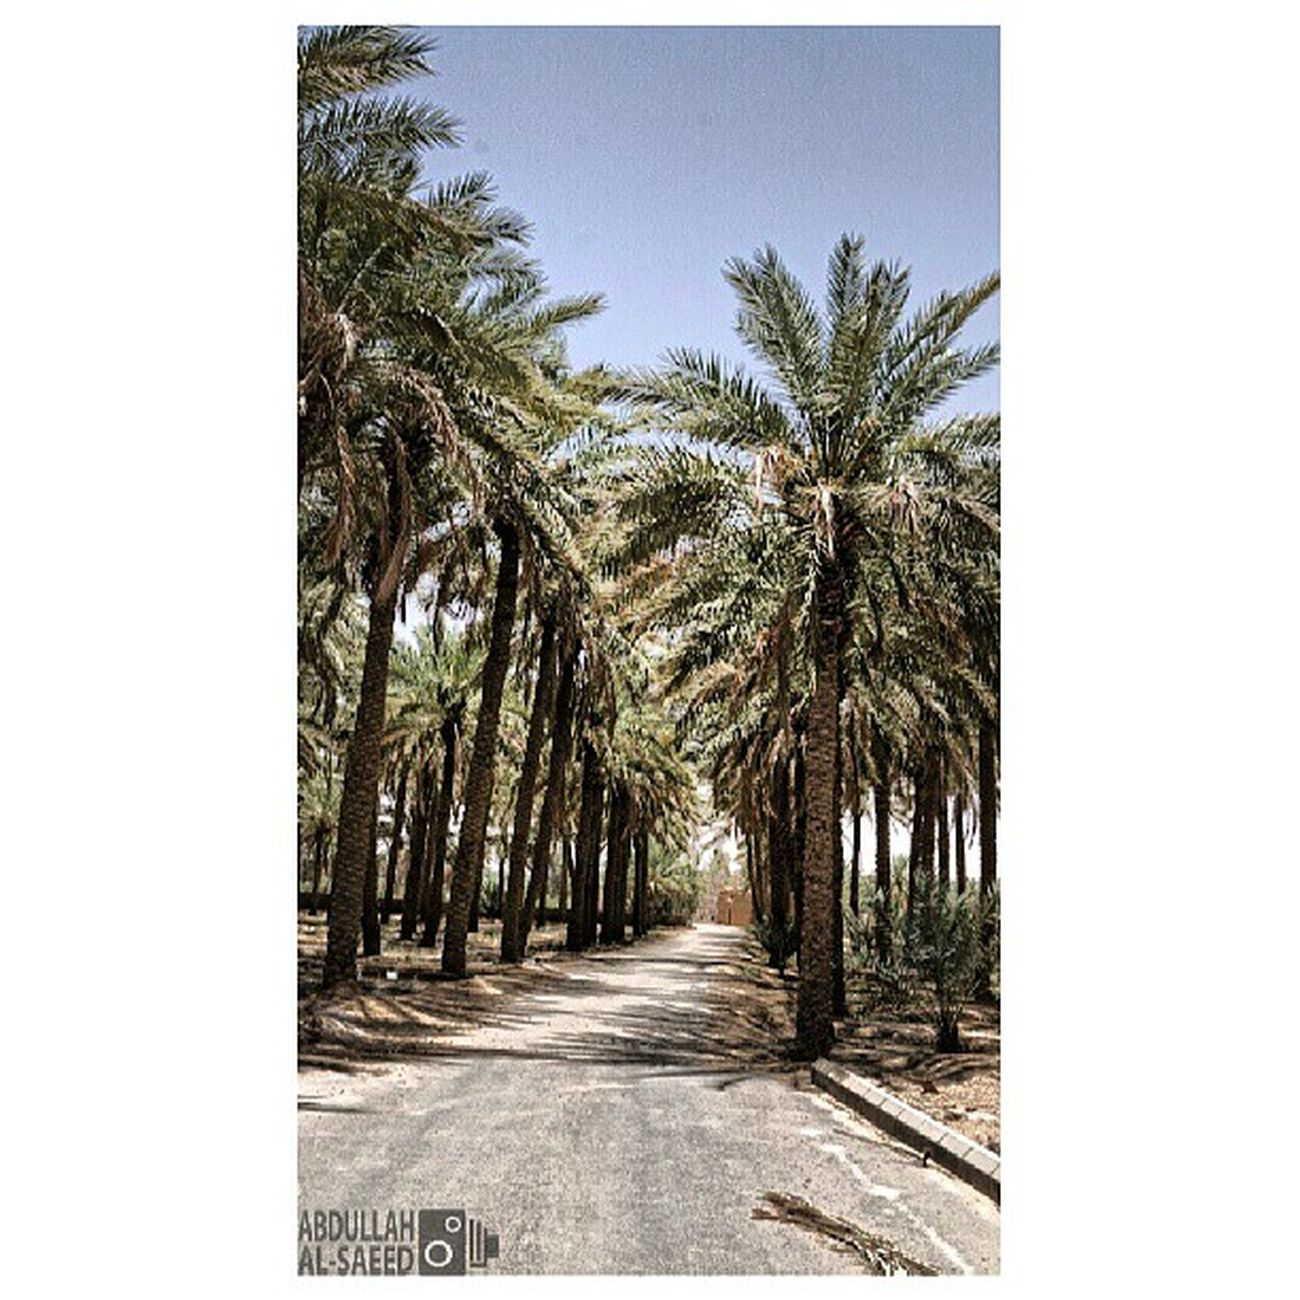 مزرعة الربيعية القصيم السعودية  ksa Saudi nature beautiful landscapes photography photo photos TagsForLikes picture photography سوني sony sonya57 green tree trees